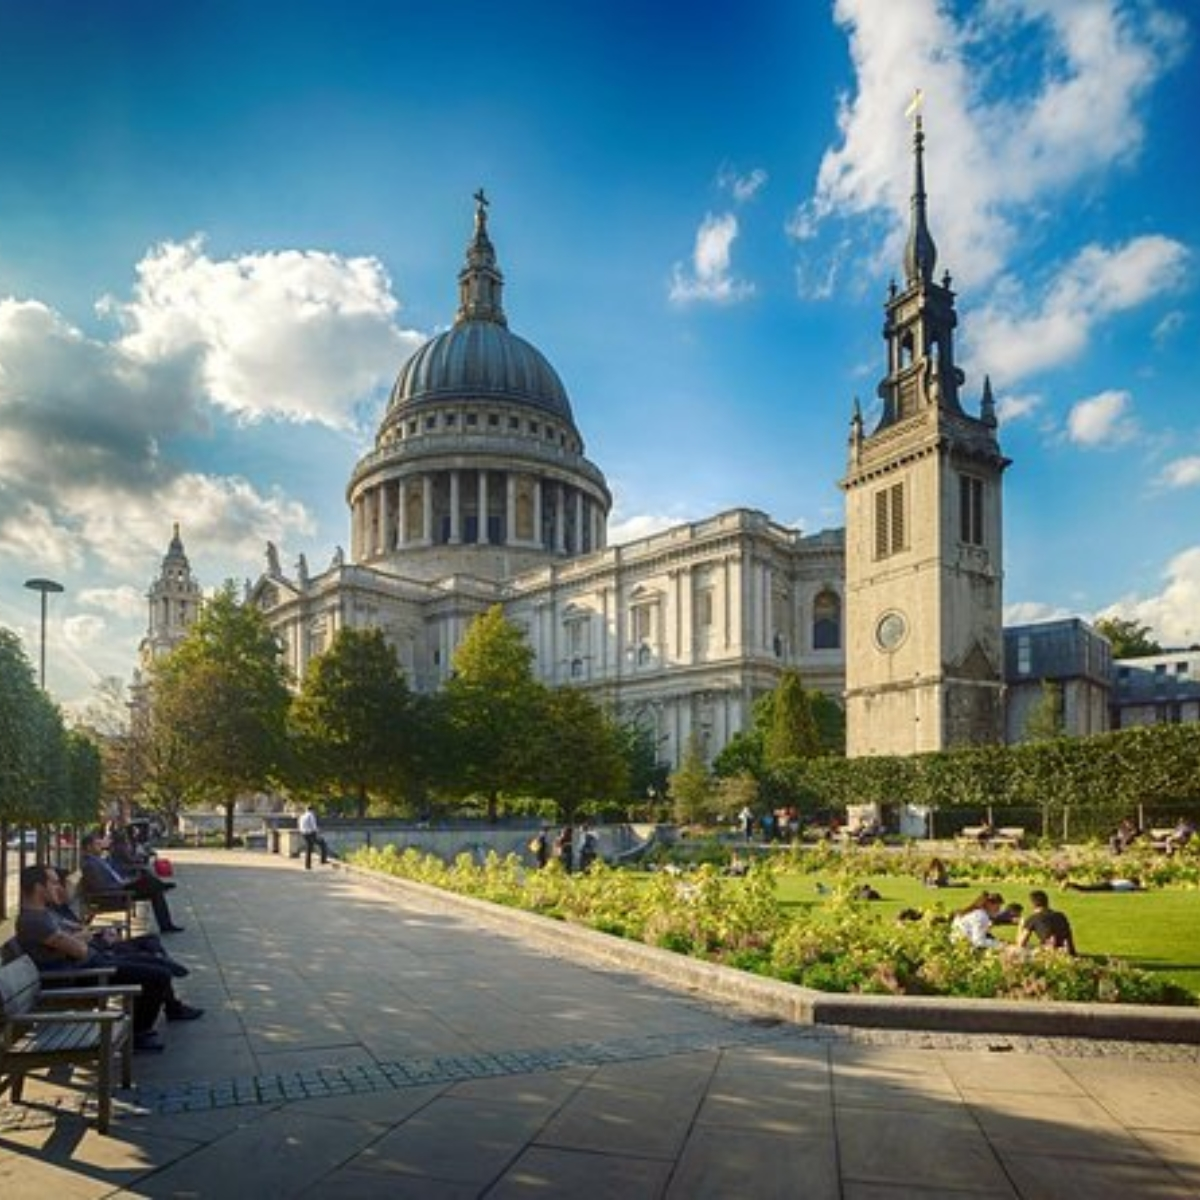 St Paul's Cathedral Admission Ticket Images